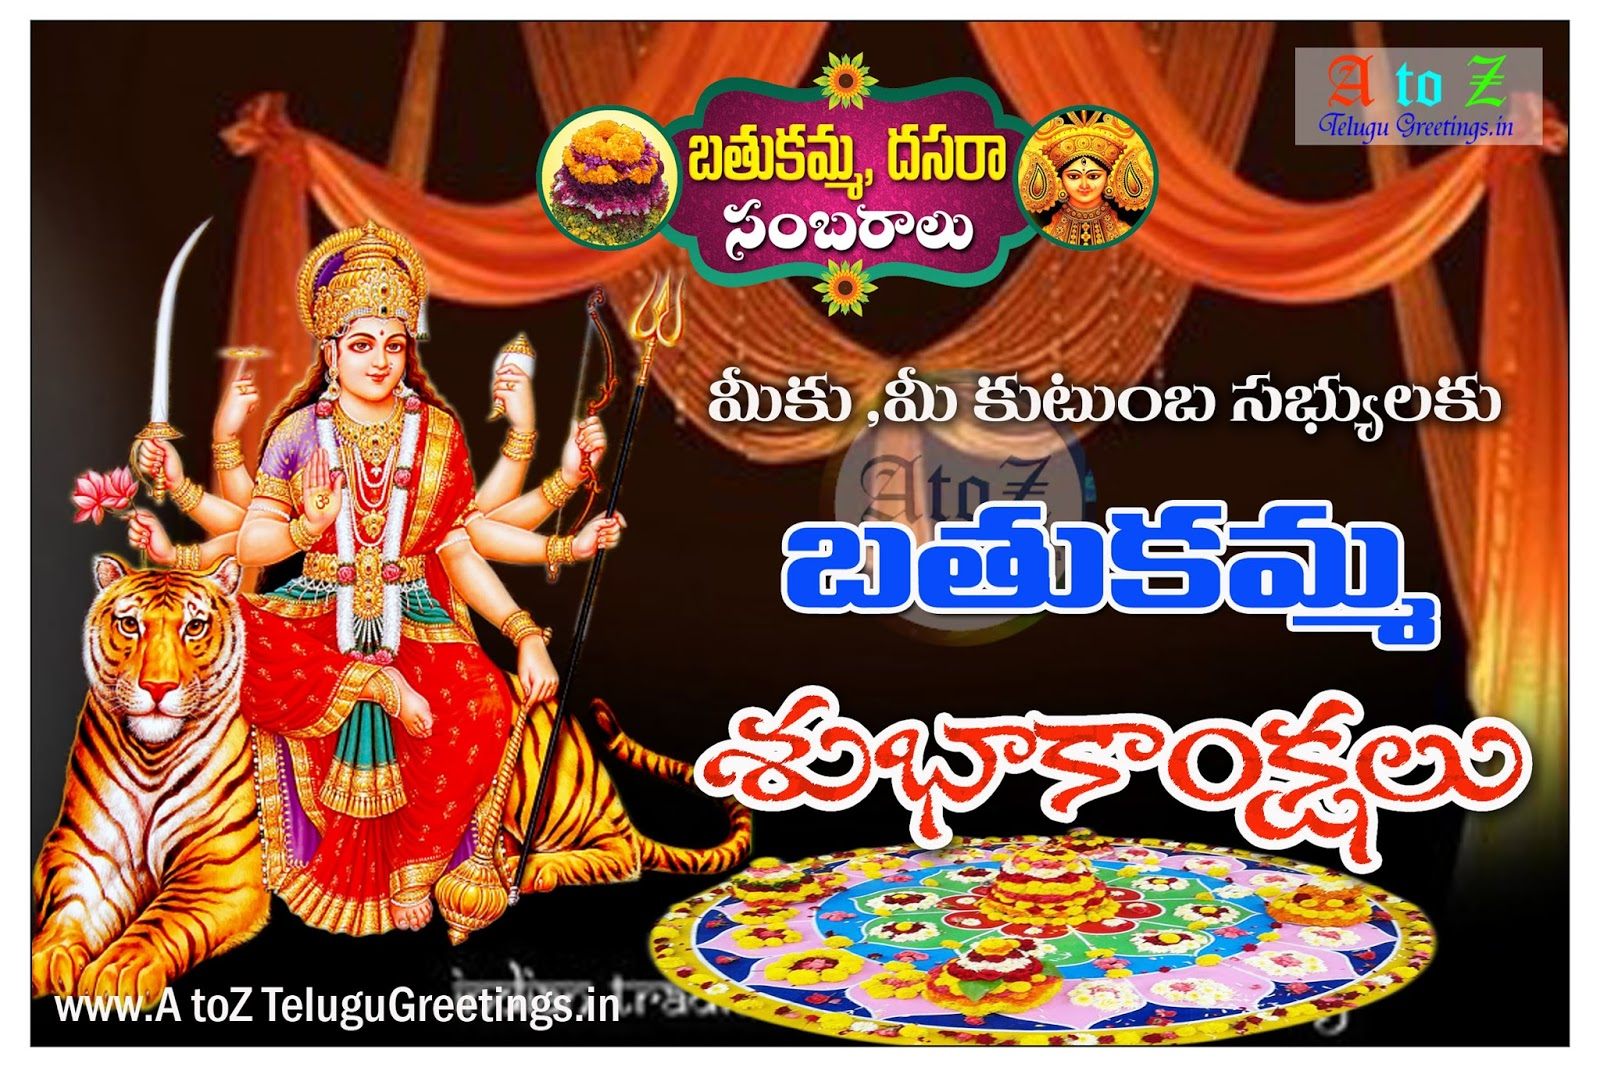 Free download best dussehra greetings free invitations printable bathukamma dasara images telangana jagruthi photos quotes facebook latest2bnew2bhappy2bbathukamma m4hsunfo